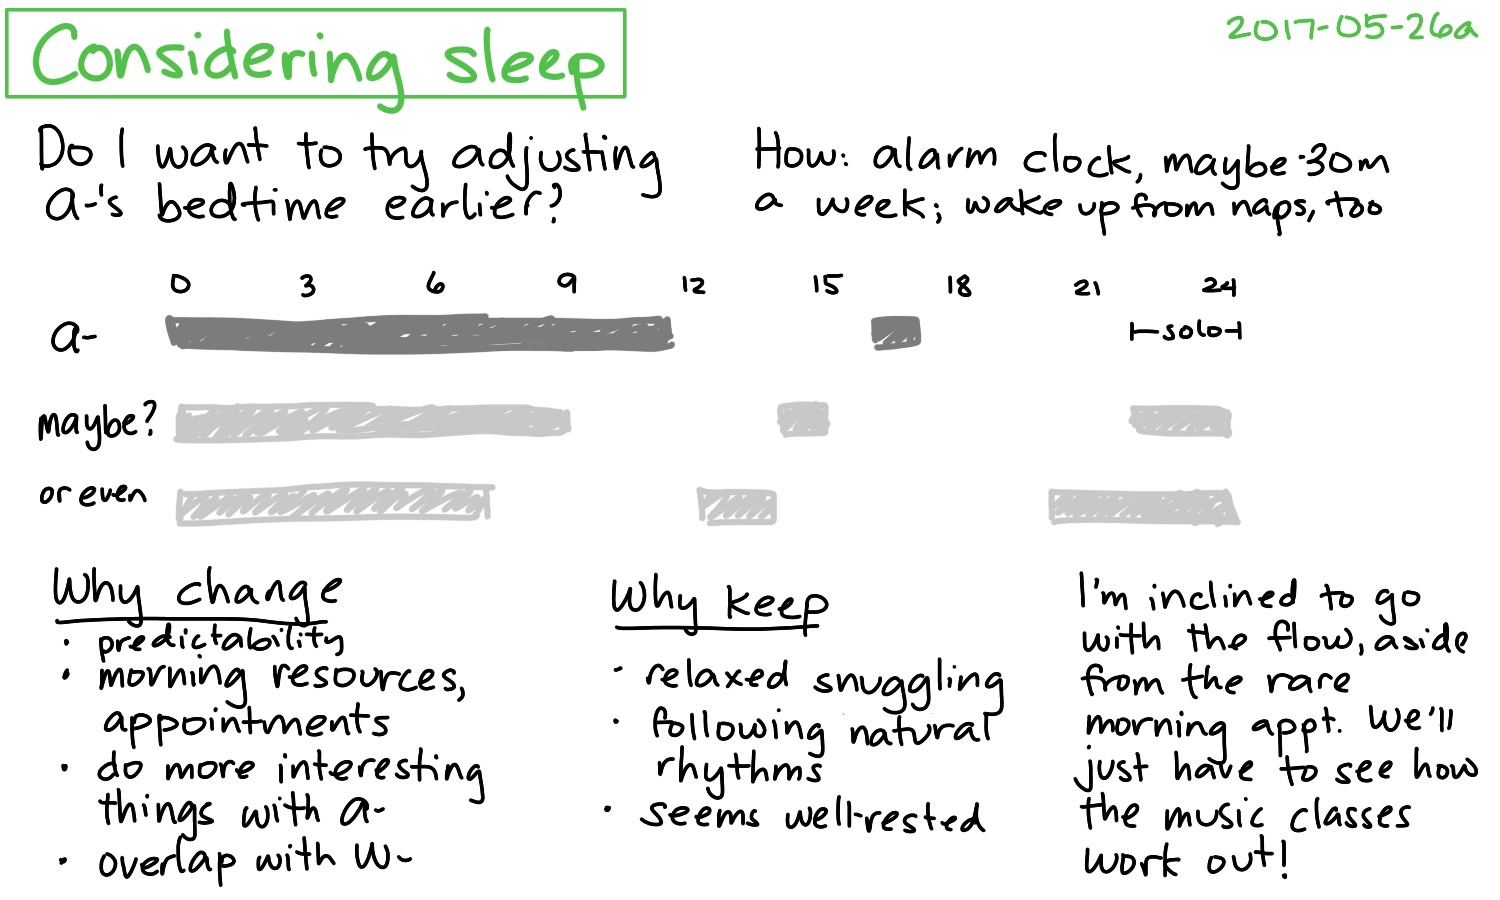 2017-05-26a Considering sleep #parenting #sleep.png